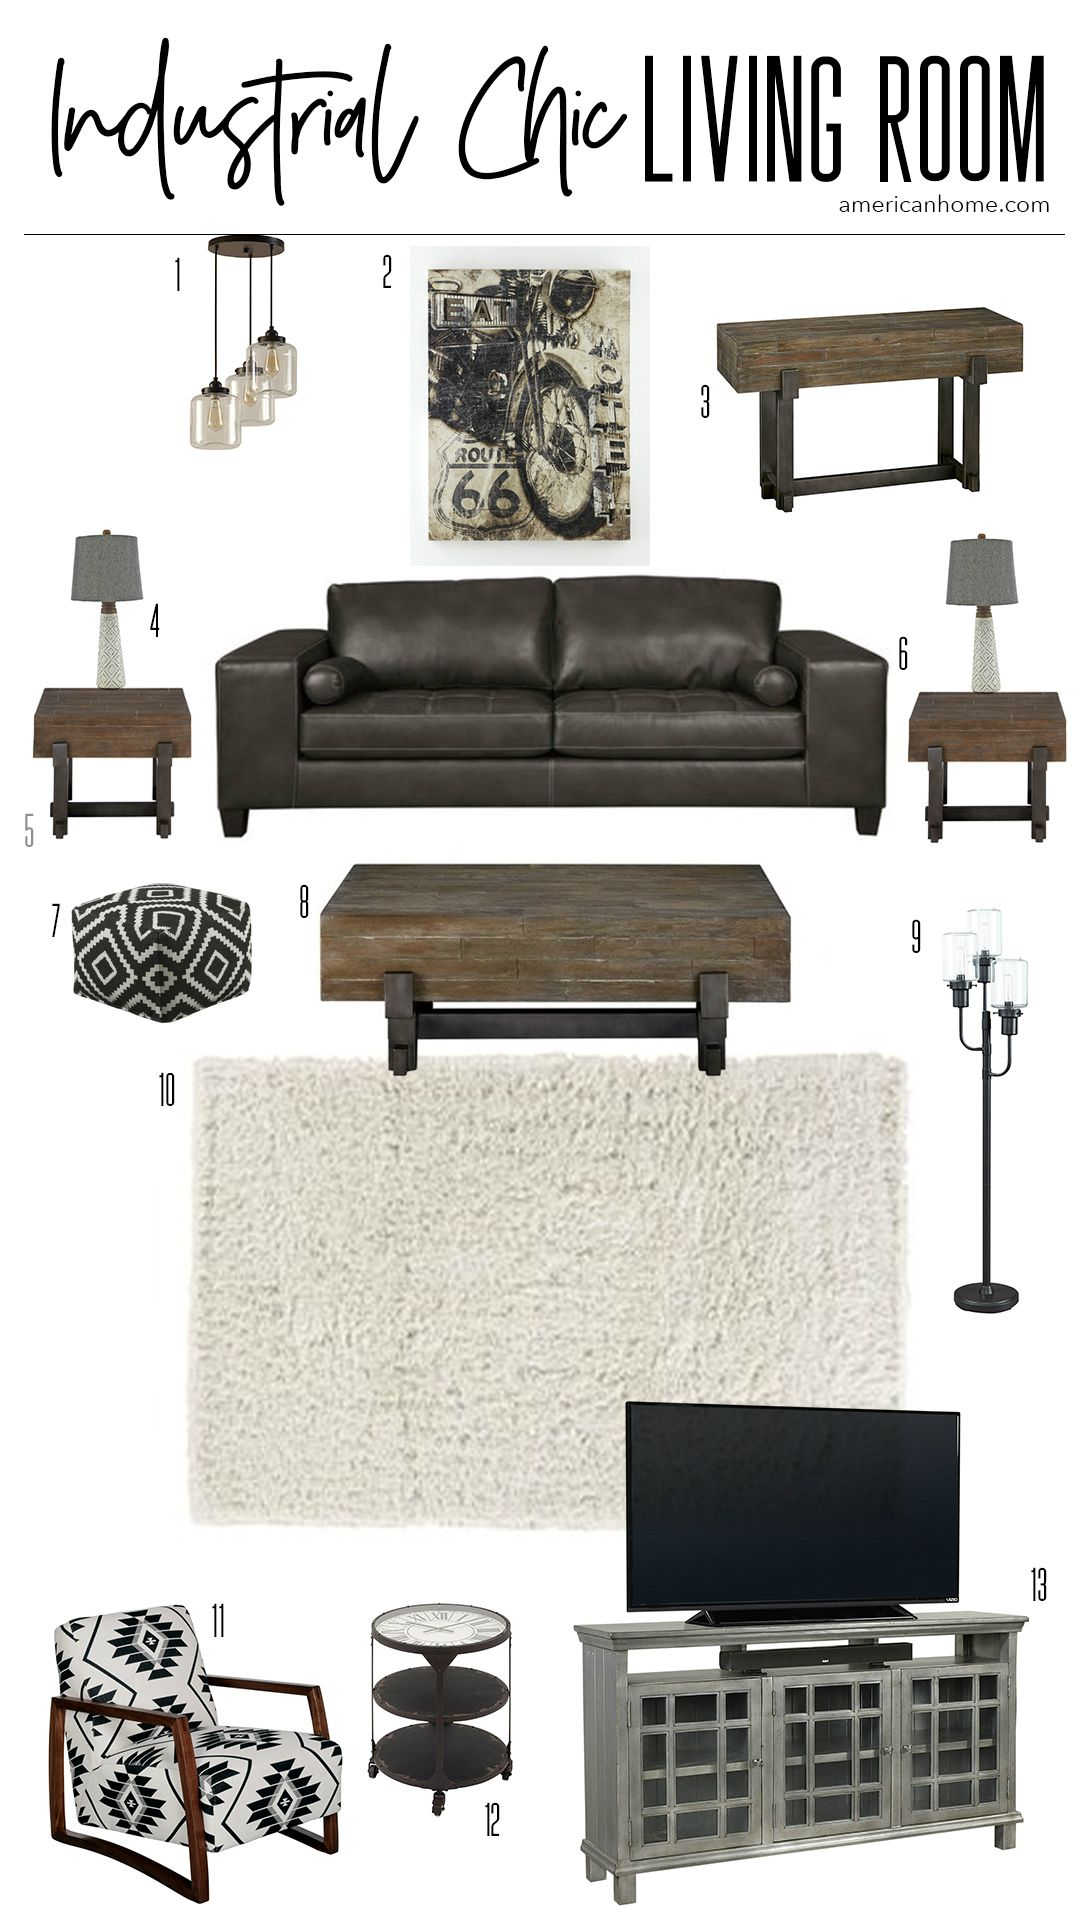 Storyboard: Industrial Chic Living Room images